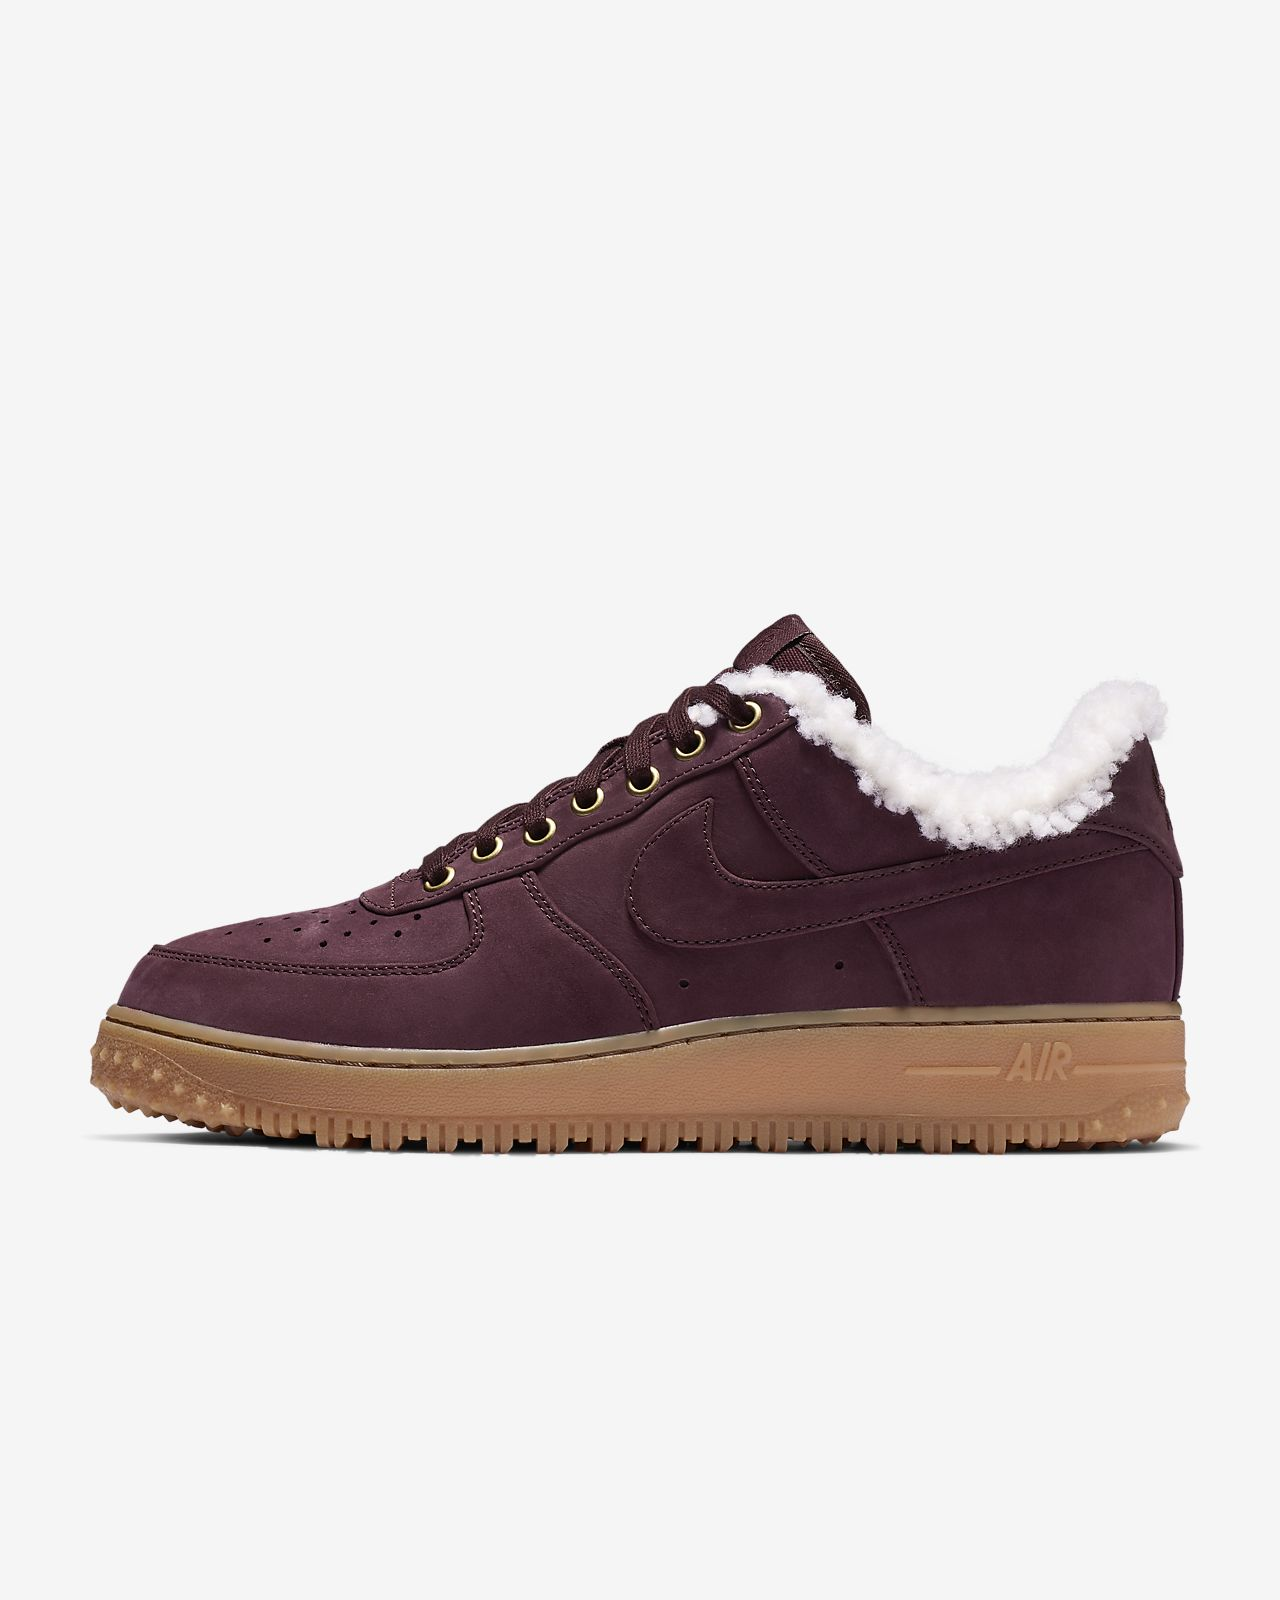 Pánská bota Nike Air Force 1 Premium Winter